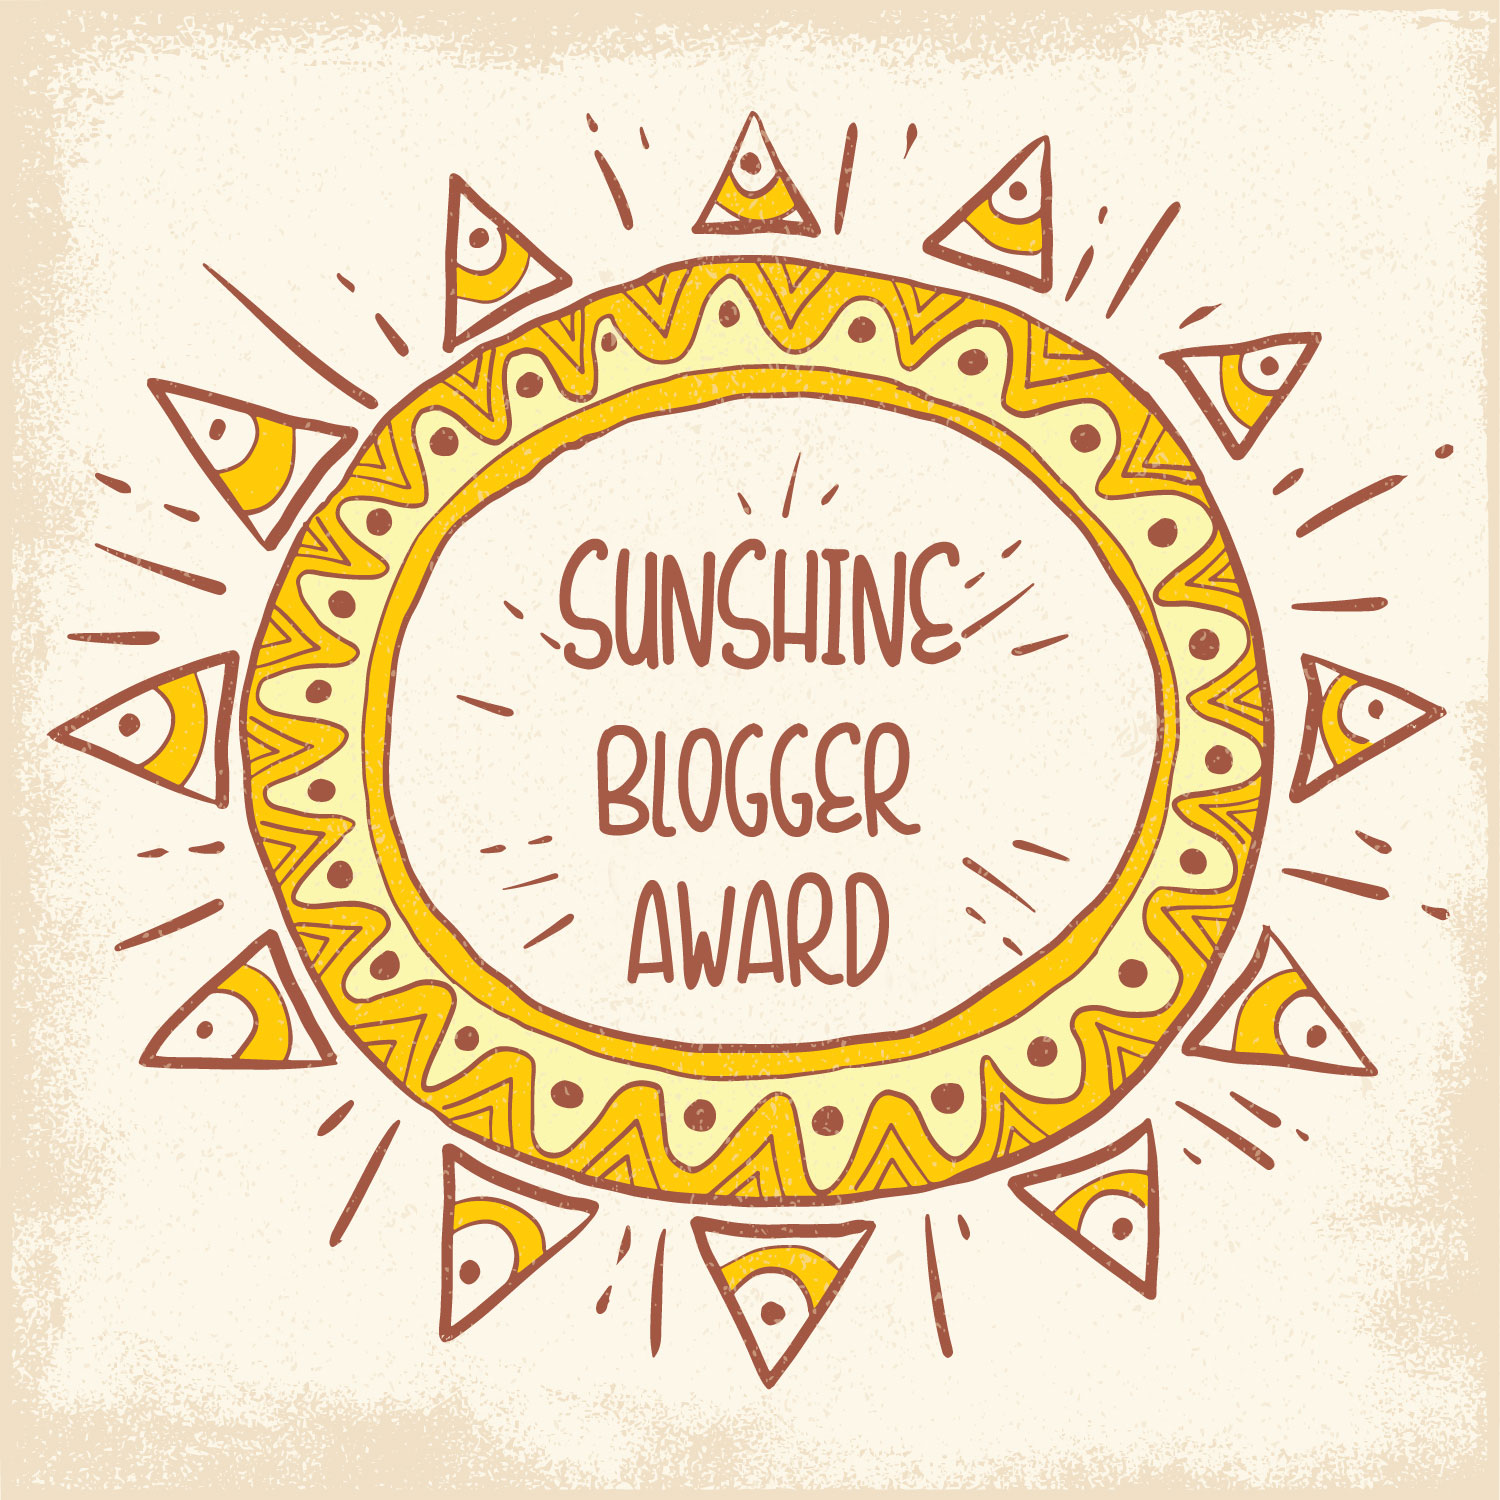 sunshine blogger award un bout de life le blog